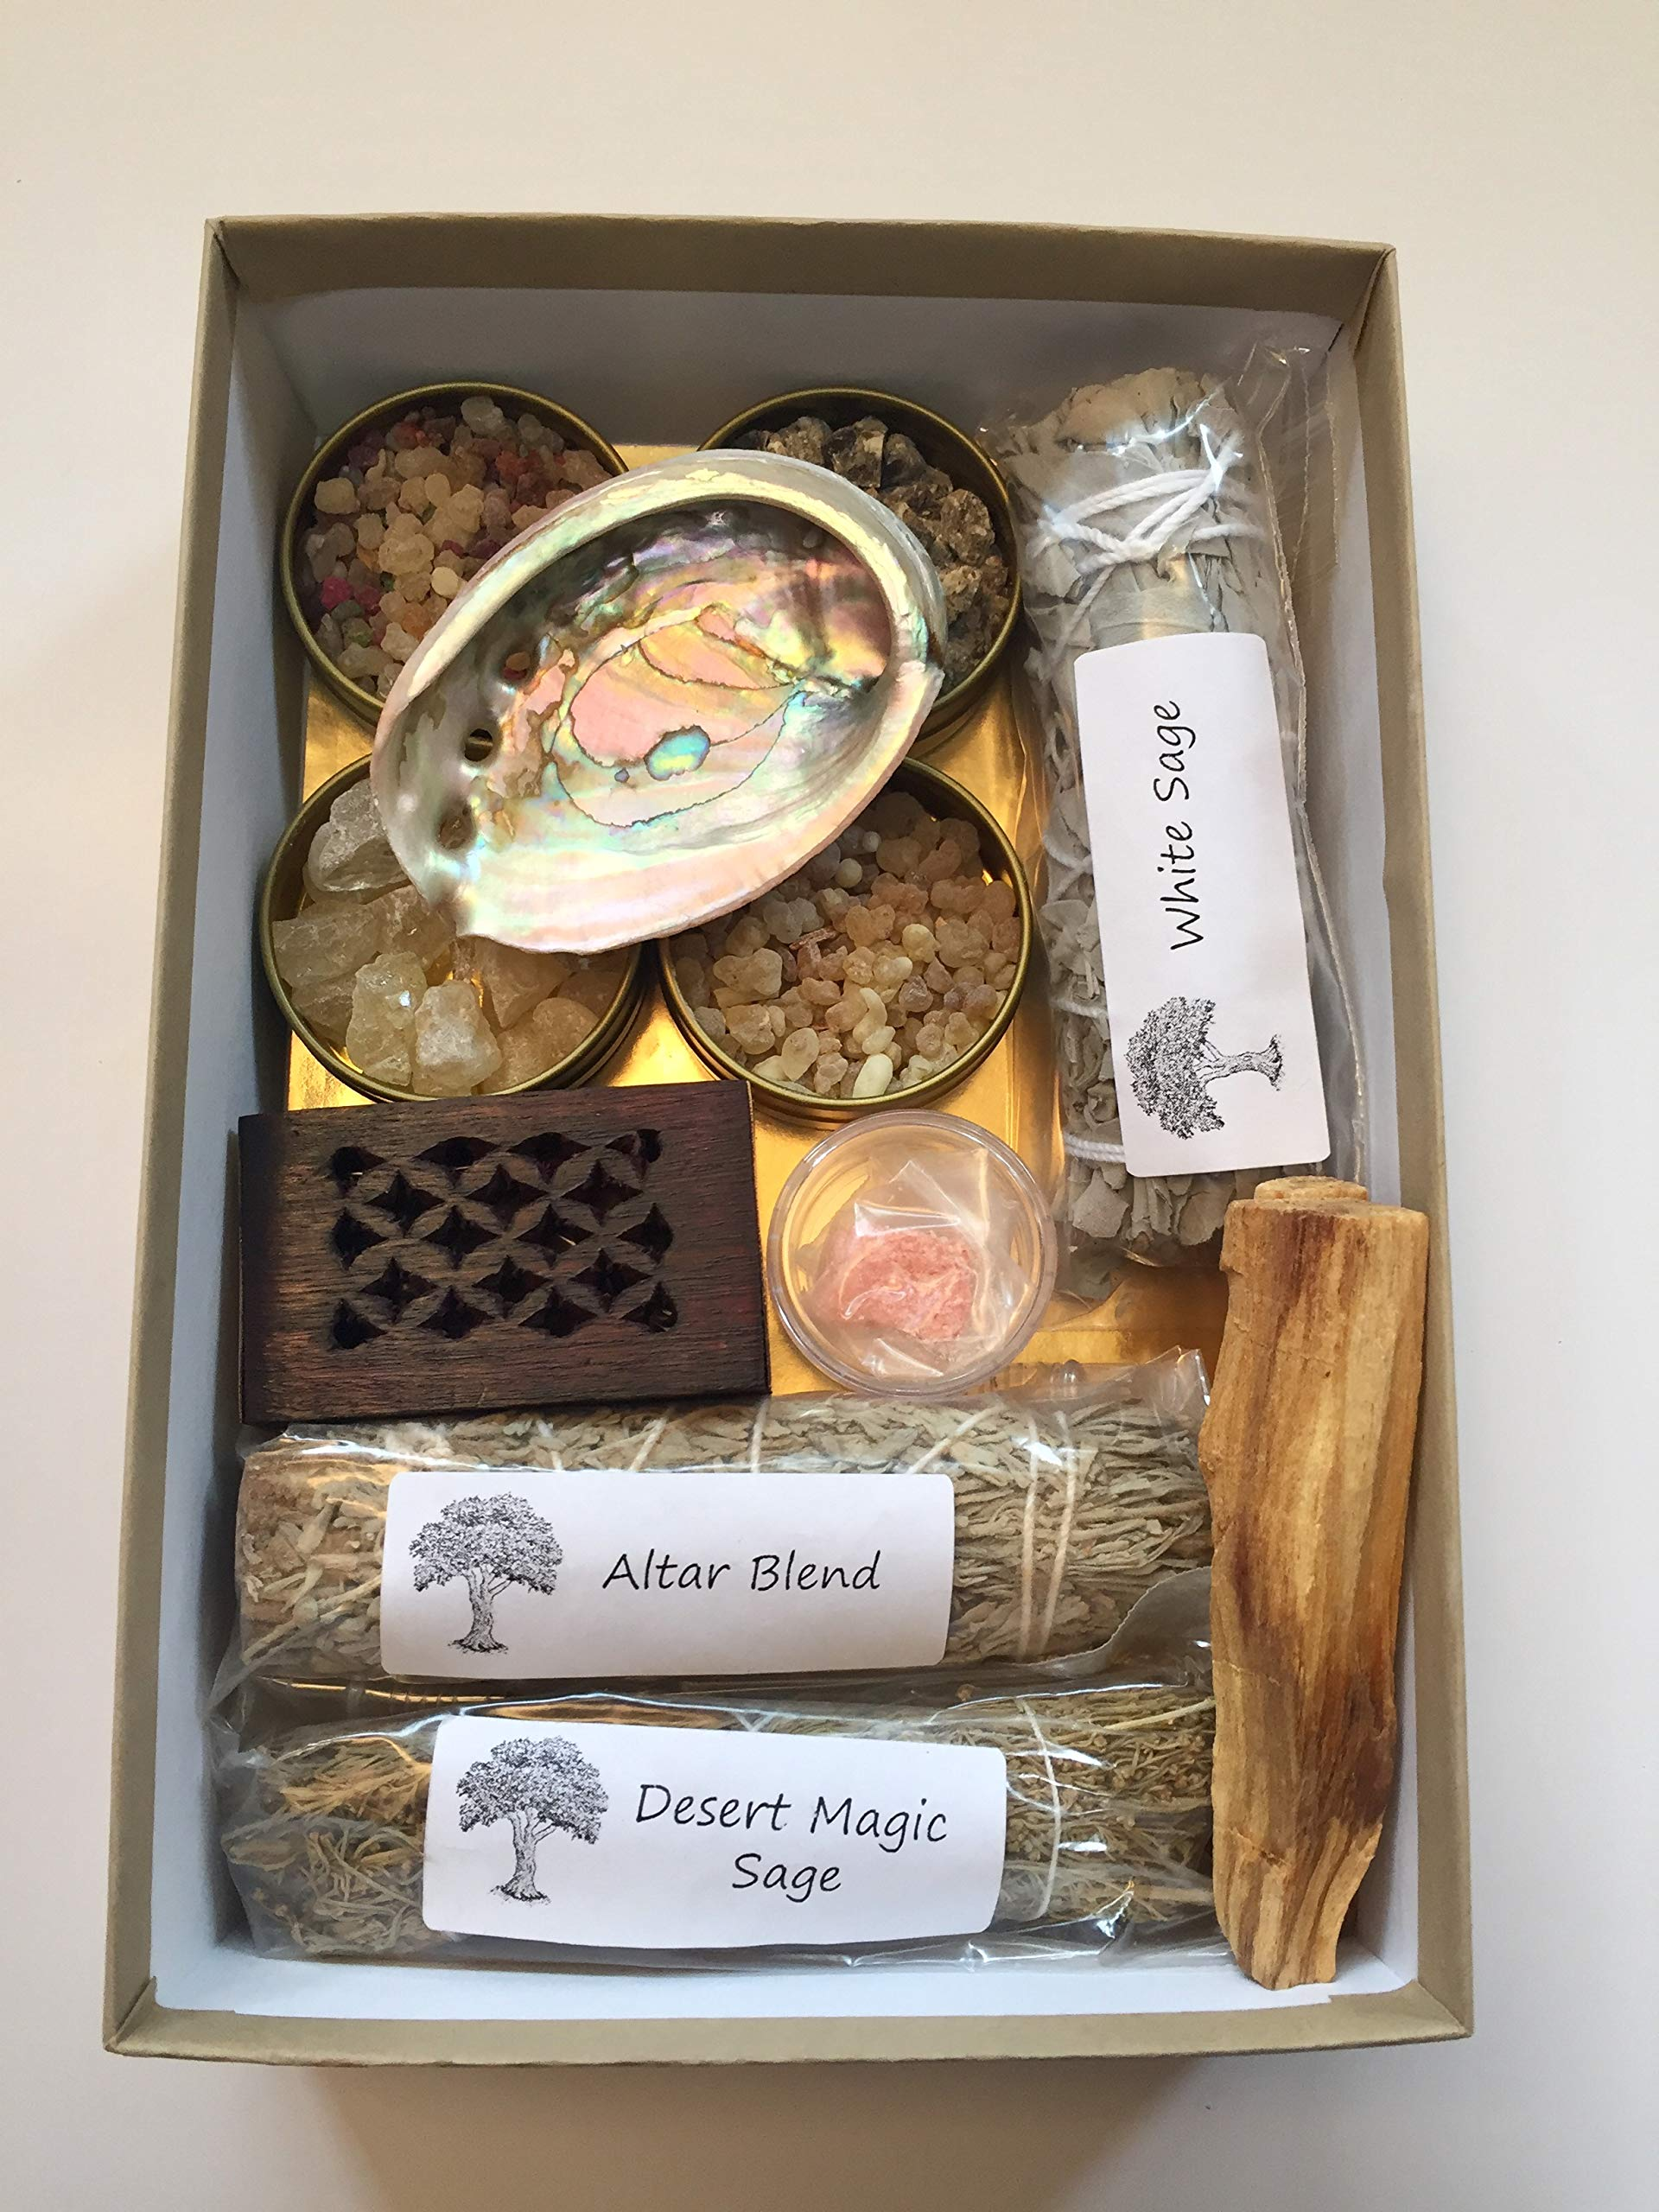 Resin Incense and Sage Smudges Variety Gift Kit includes, Amber Resin, Rose Resin, White Copal, Mystical Benzoin, Frankincense, White Sage Smudge, Desert Sage, Palo Santo Sticks and Abalone Shell by Sacred Scents For You (Image #1)